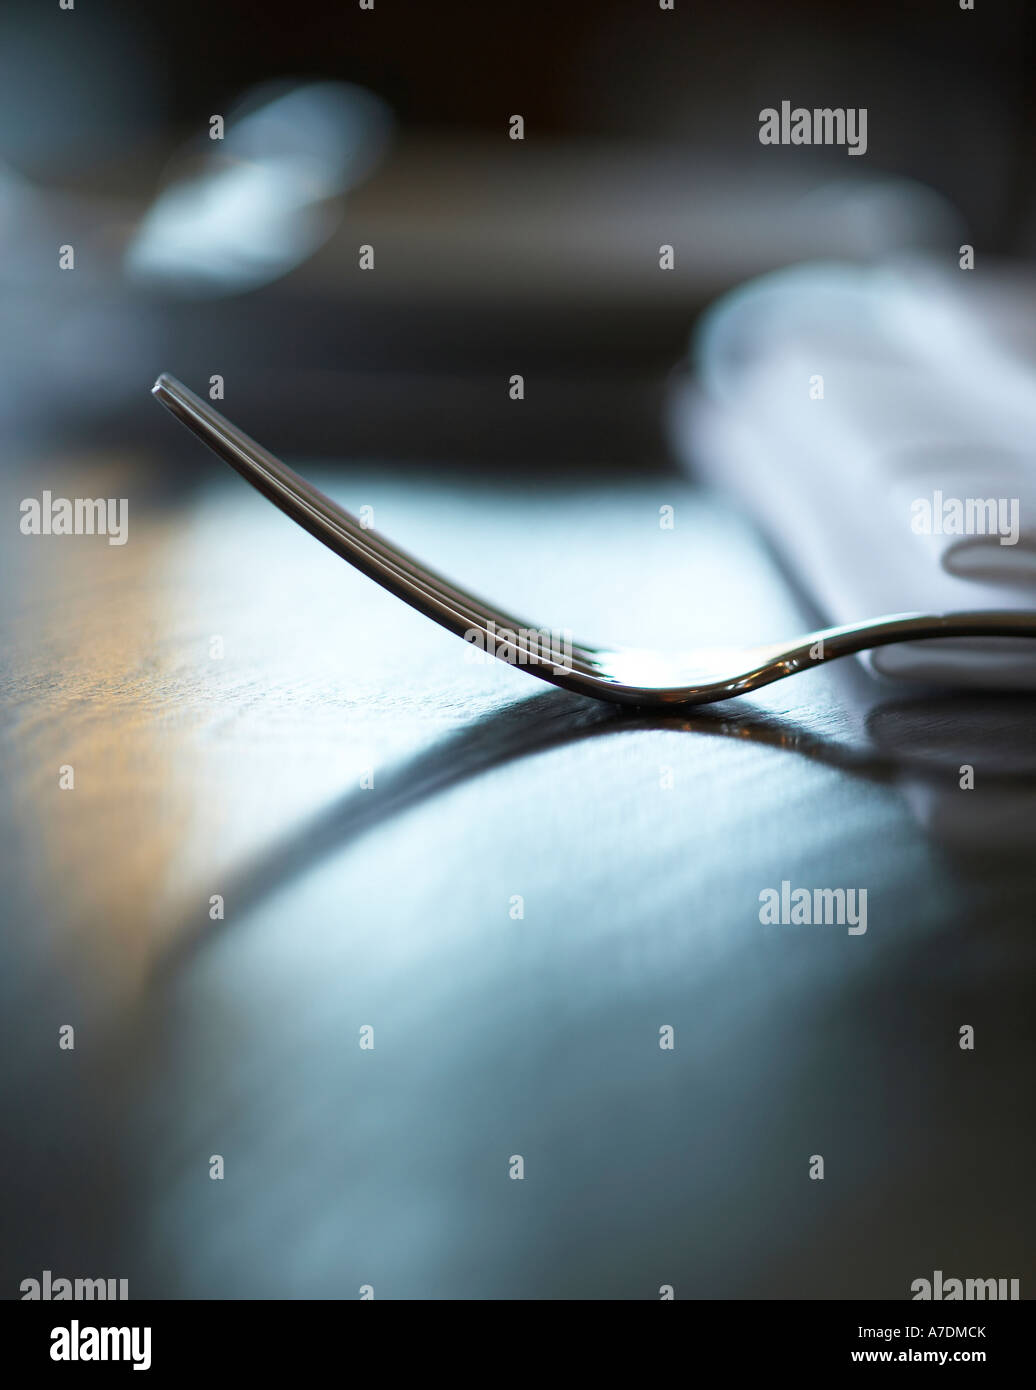 Fork in a restaurant - Stock Image